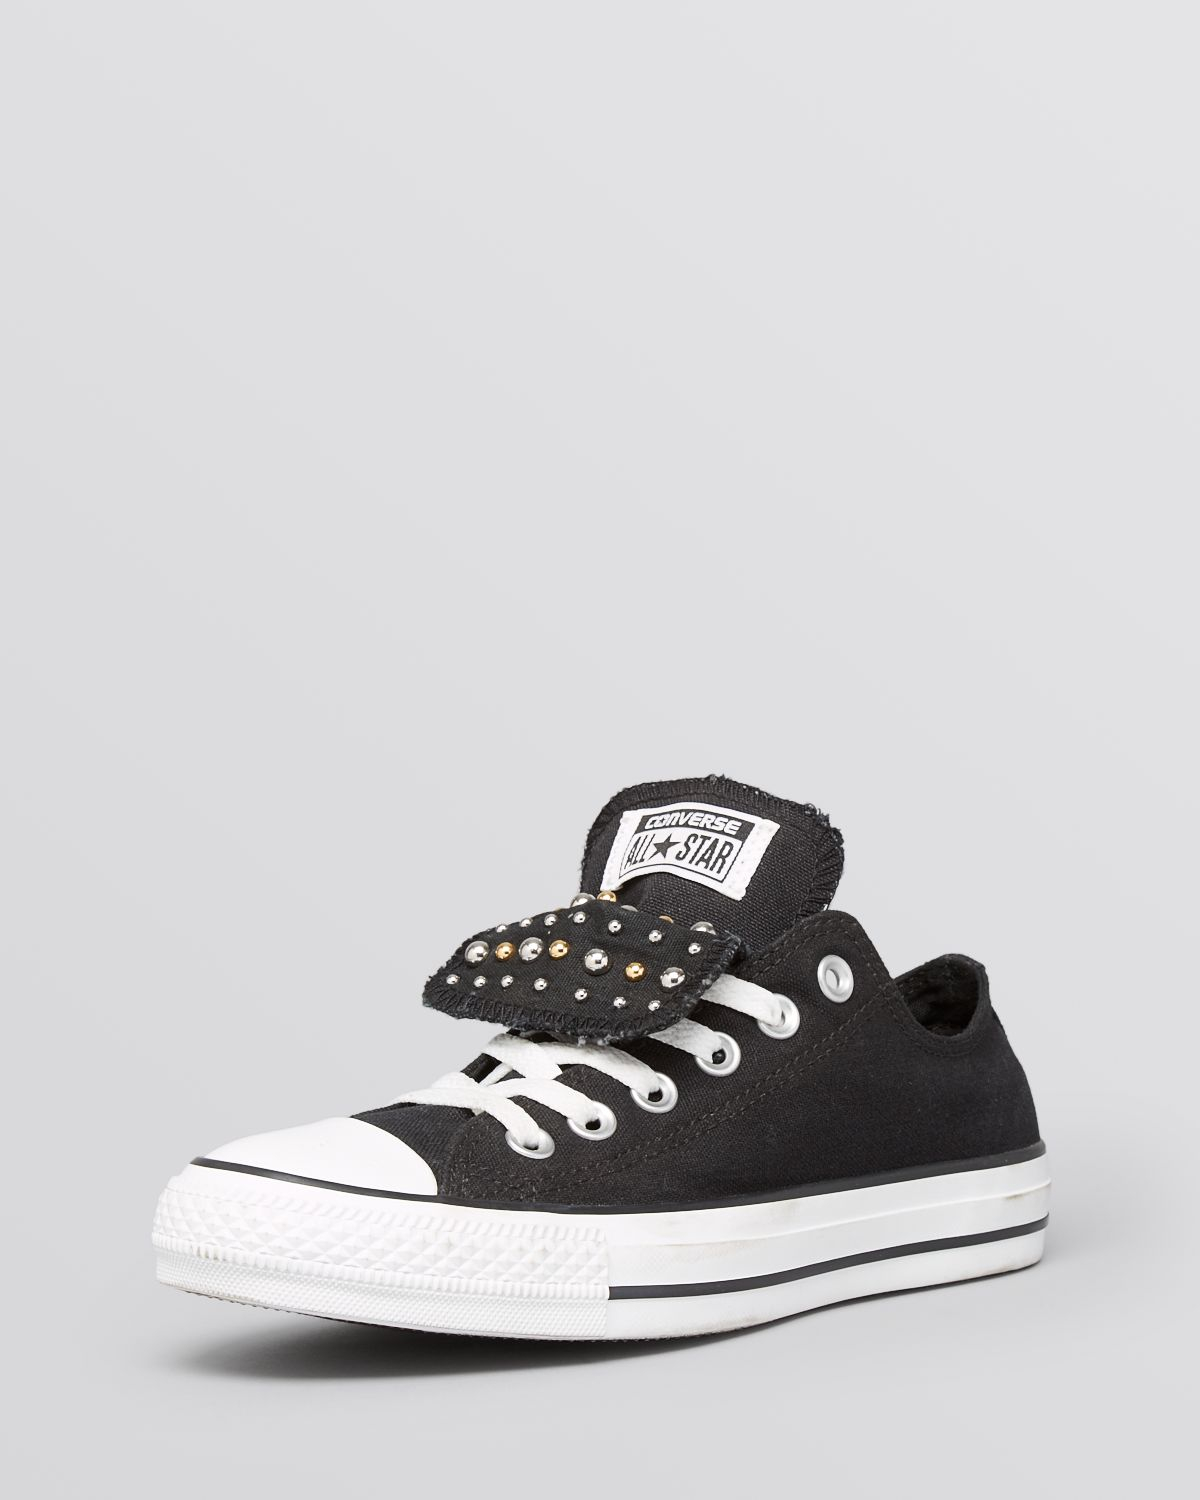 366c07b68b9084 Converse Lace Up Sneakers - Women S All Star Studded Double Tongue ...